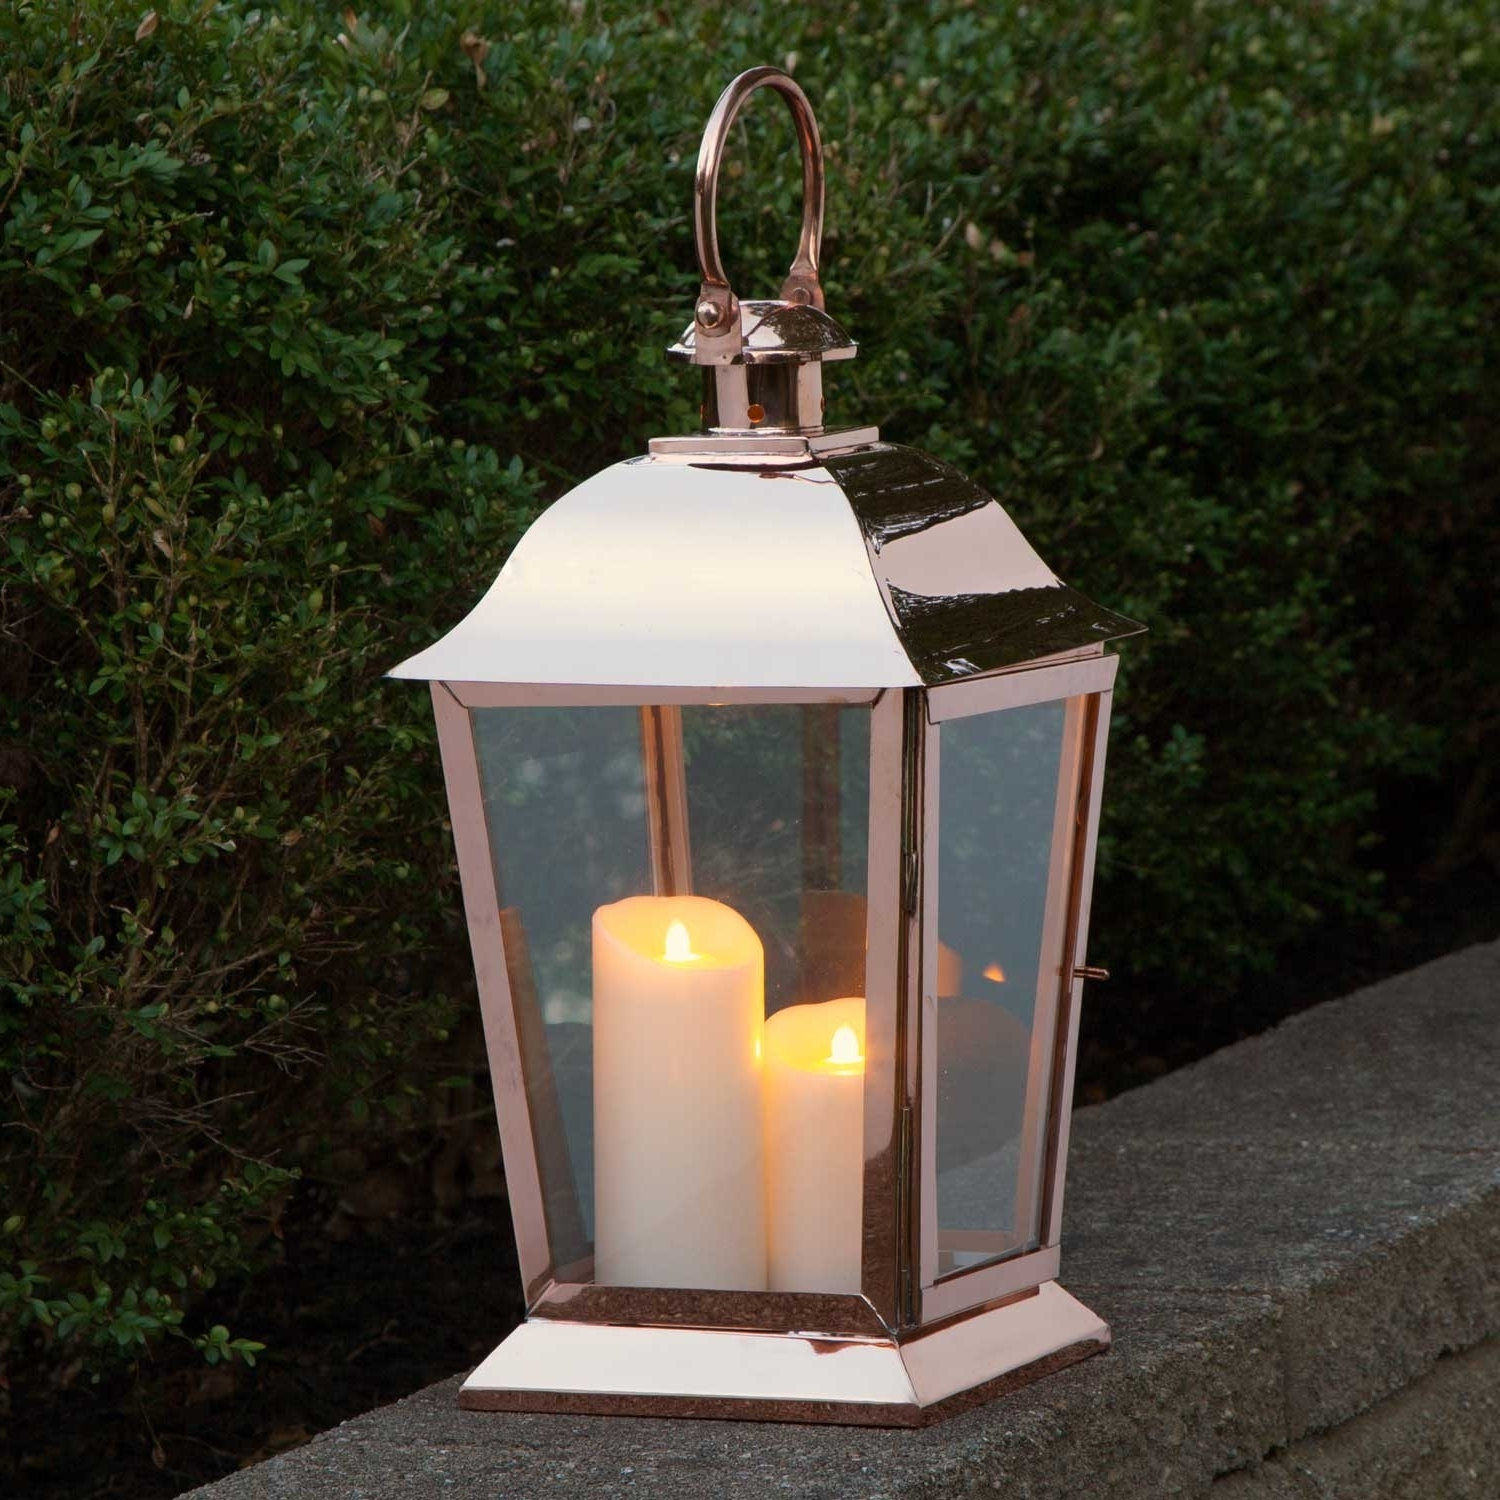 Preferred List Of Synonyms And Antonyms The Word Outdoor Candle Lanterns Grade With Outdoor Lanterns With Candles (View 6 of 20)